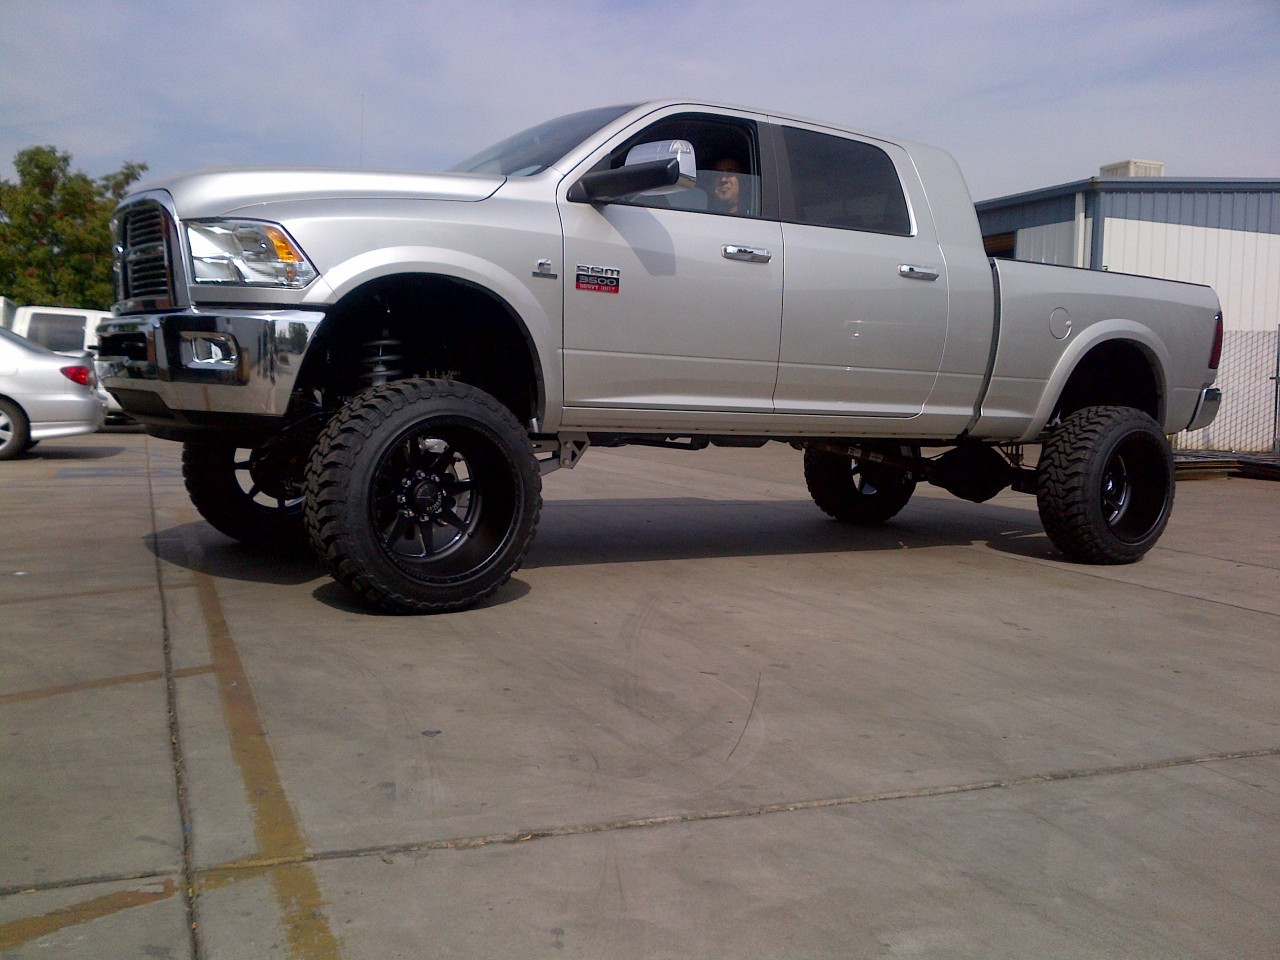 2009 2012 dodge ram 3500 lift kit 8 4wd diesel motor wshocks - 2015 Dodge Ram Lifted